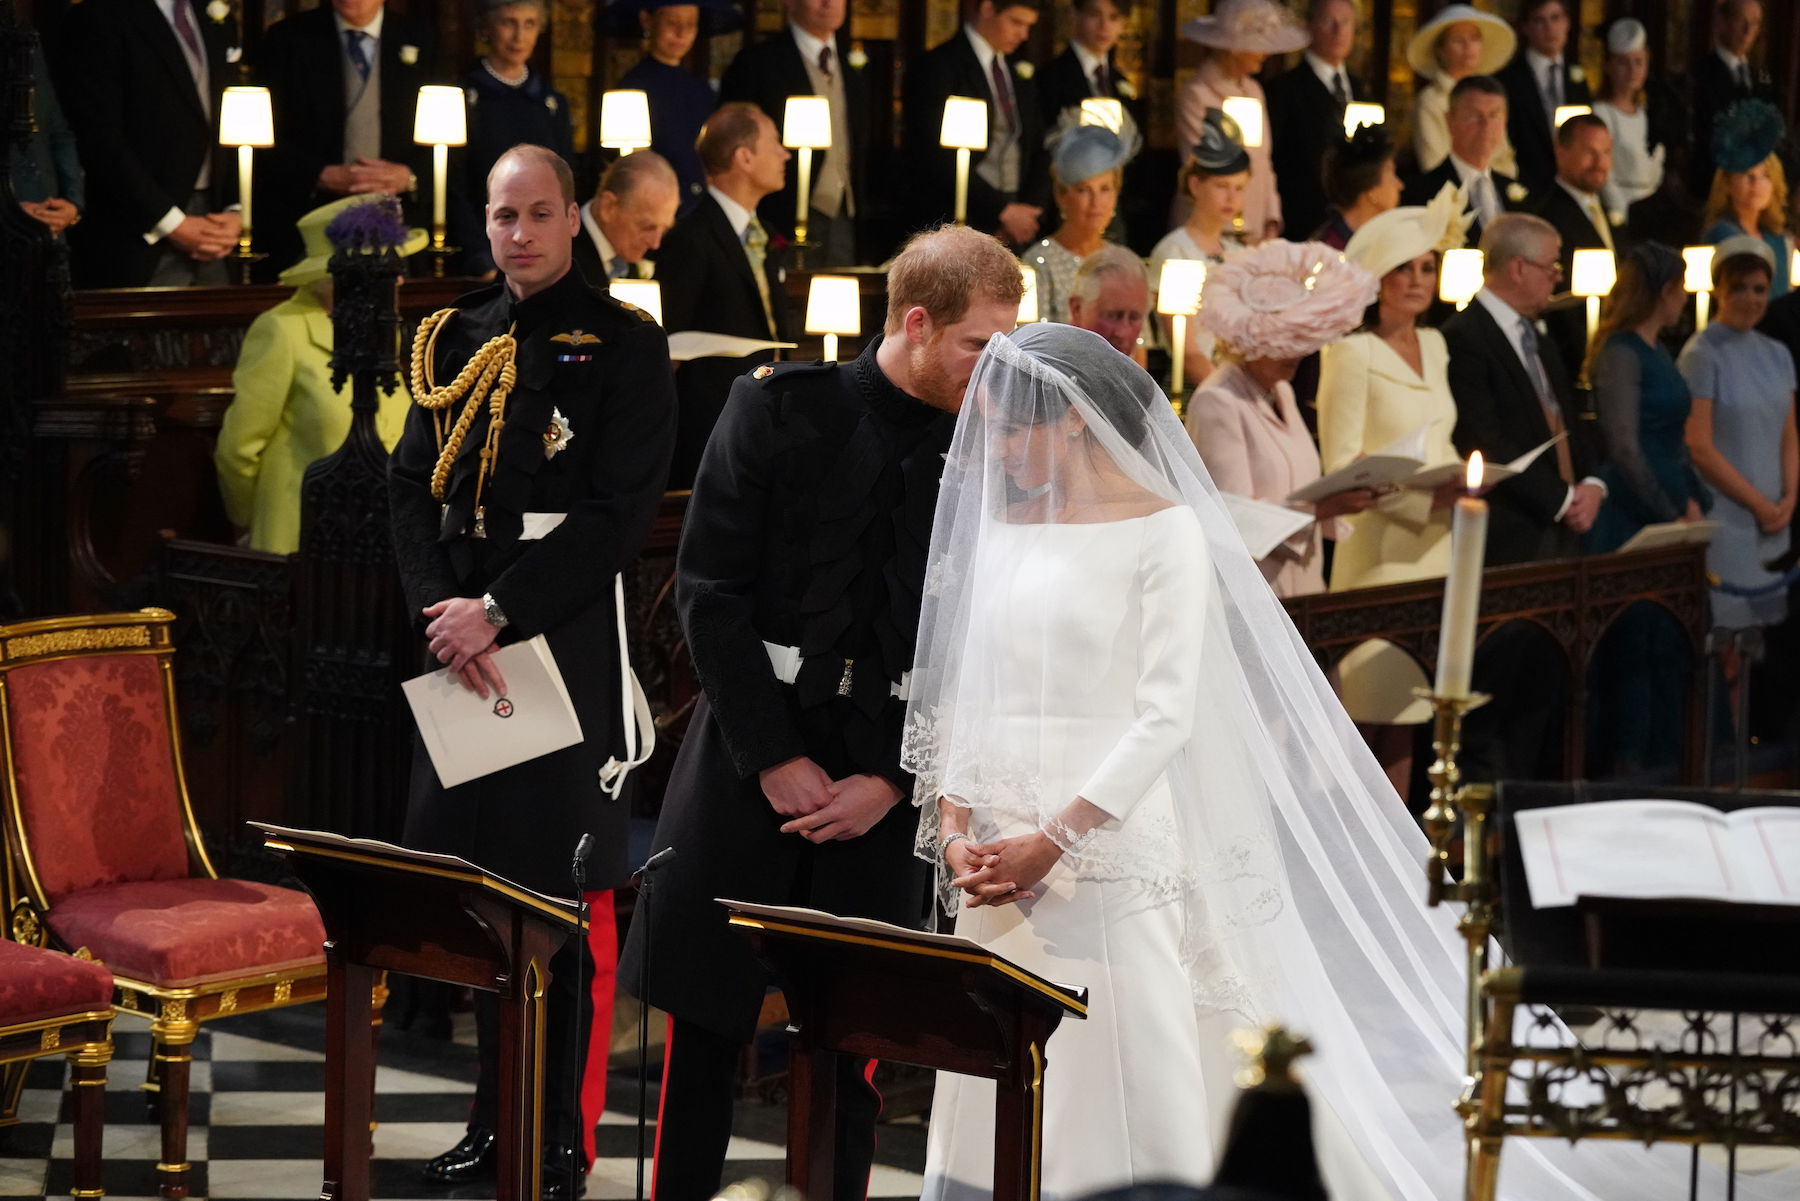 "<div class=""meta image-caption""><div class=""origin-logo origin-image wpvi""><span>wpvi</span></div><span class=""caption-text"">Britain's Prince Harry and Meghan Markle arrive at the High Altar for their wedding ceremony in St George's Chapel, Windsor Castle. (Jonathan BradyAFP/Getty Images)</span></div>"